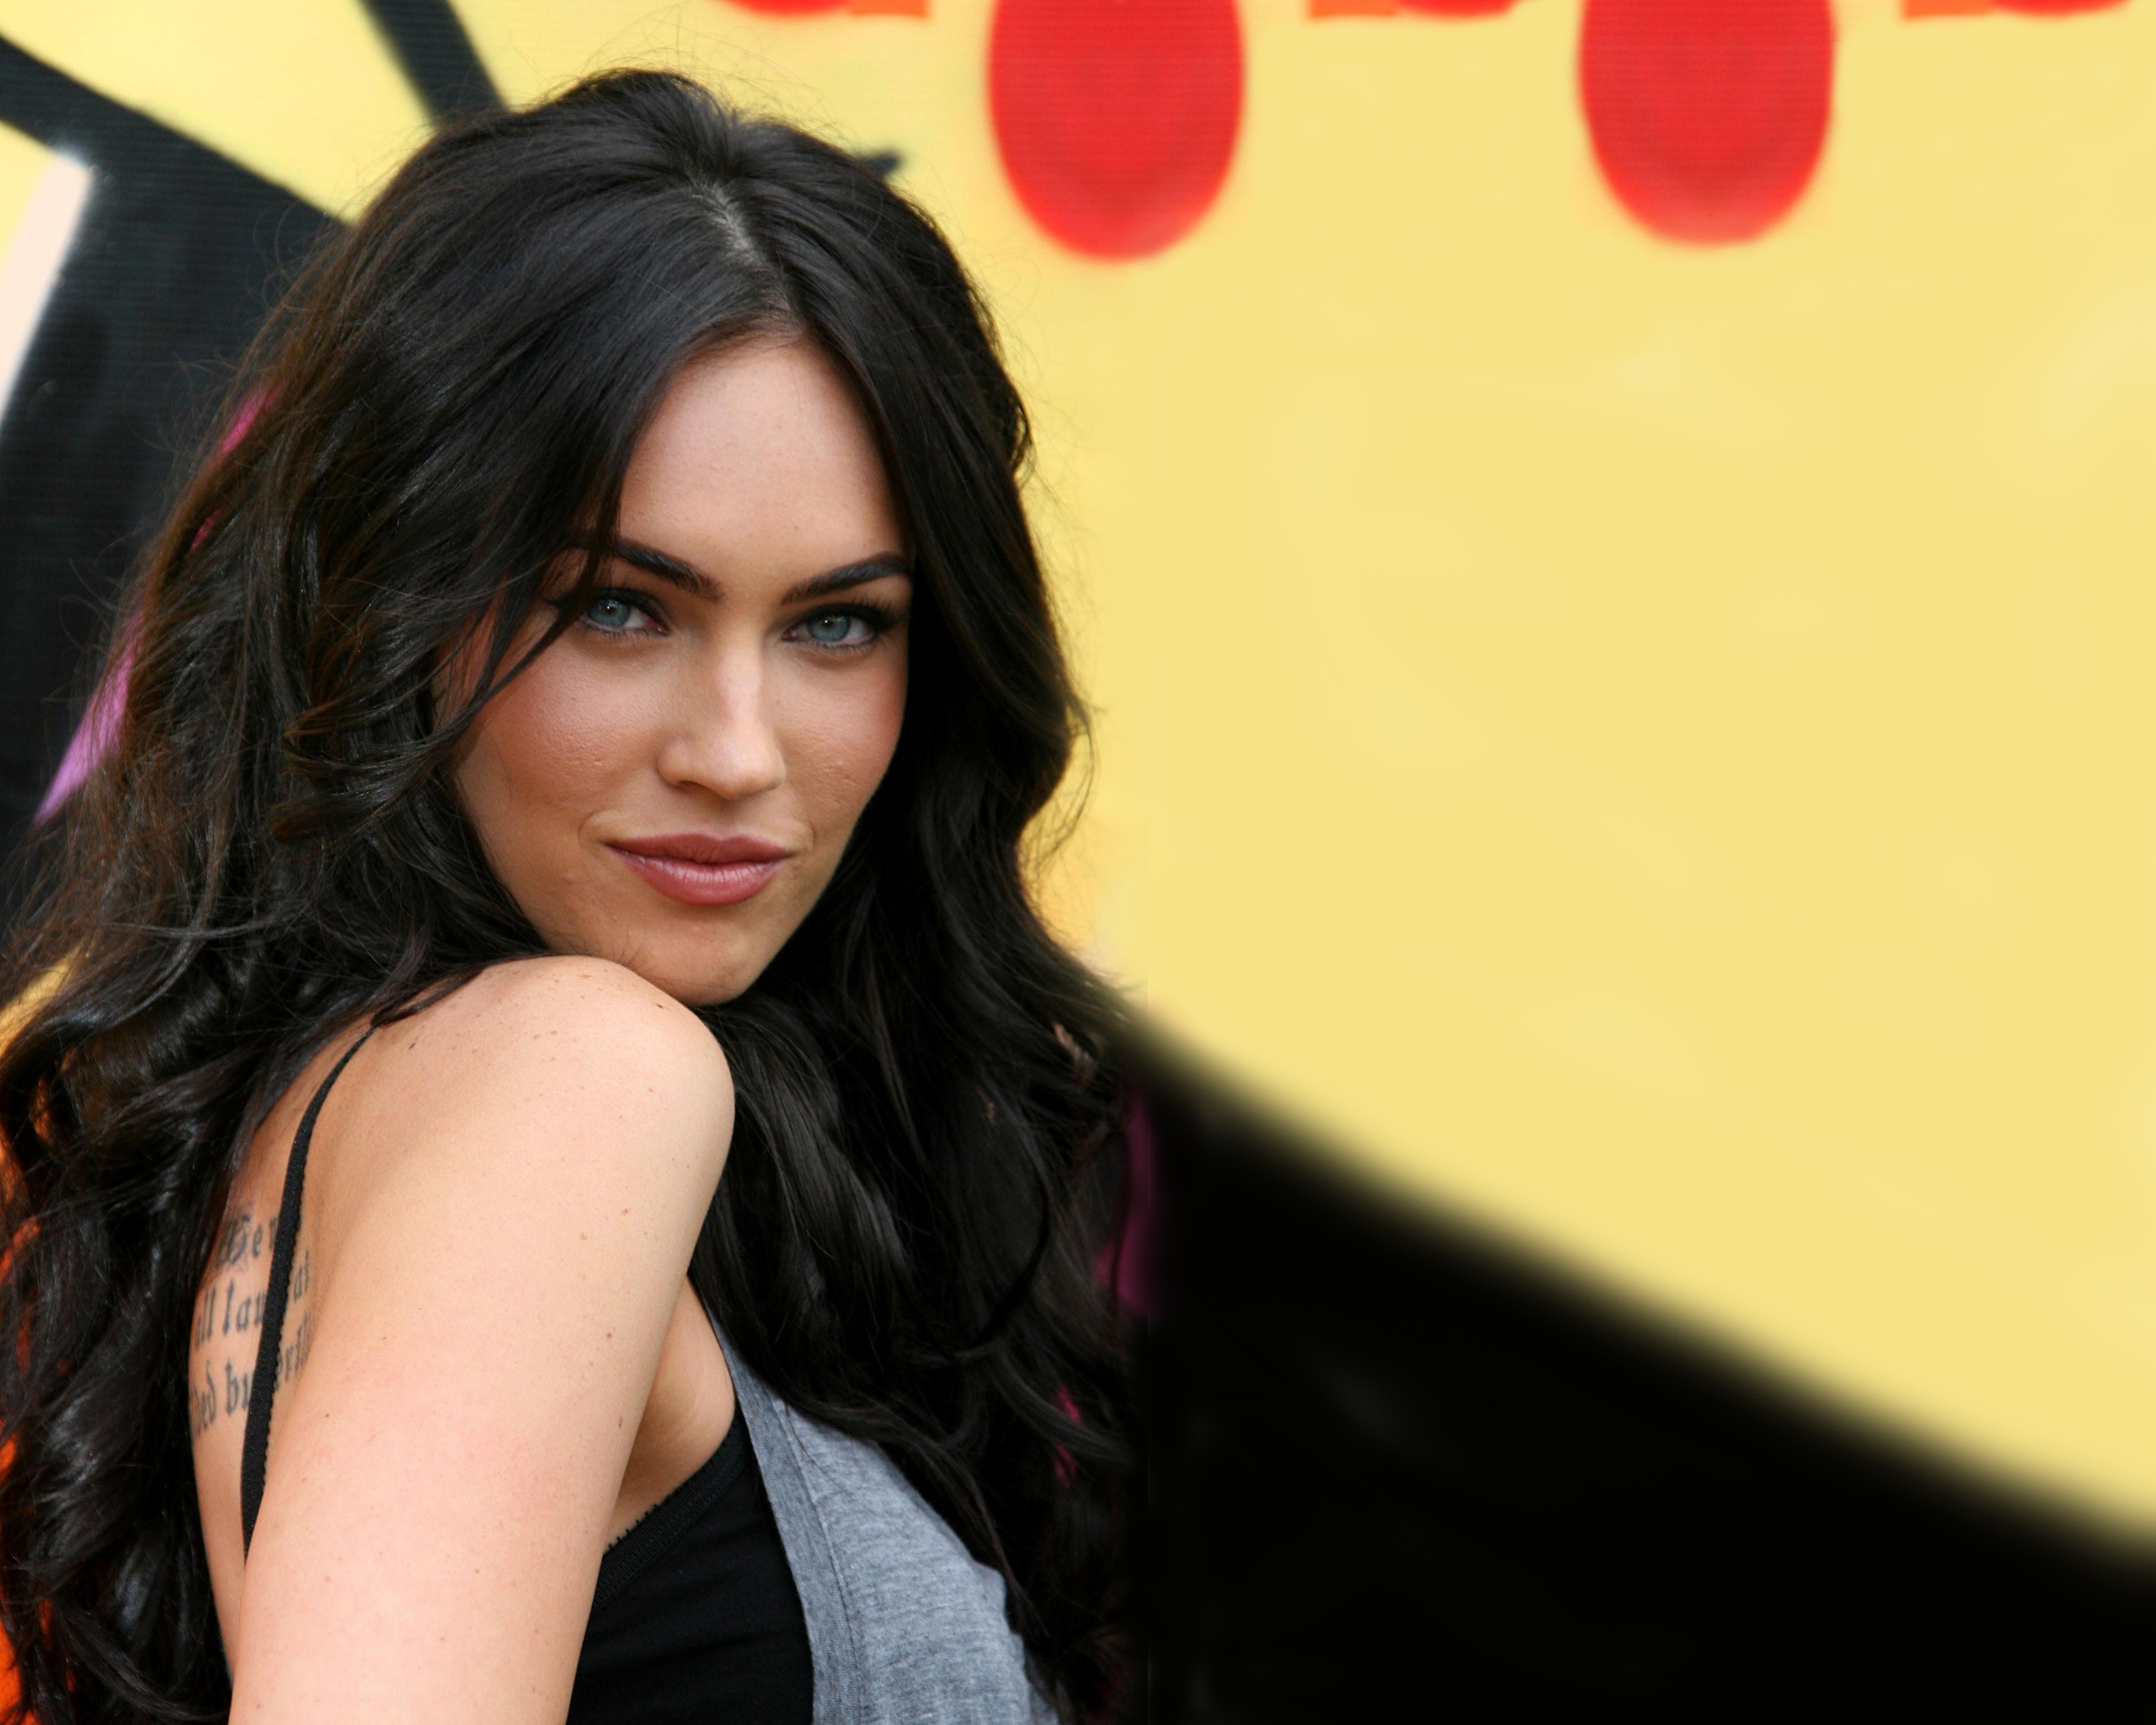 Megan Fox Actress Transformers Megan Denise Fox was born in Rockwood Tennessee to Gloria Darlene Cisson and Franklin Thomas Fox a parole officer Megan began